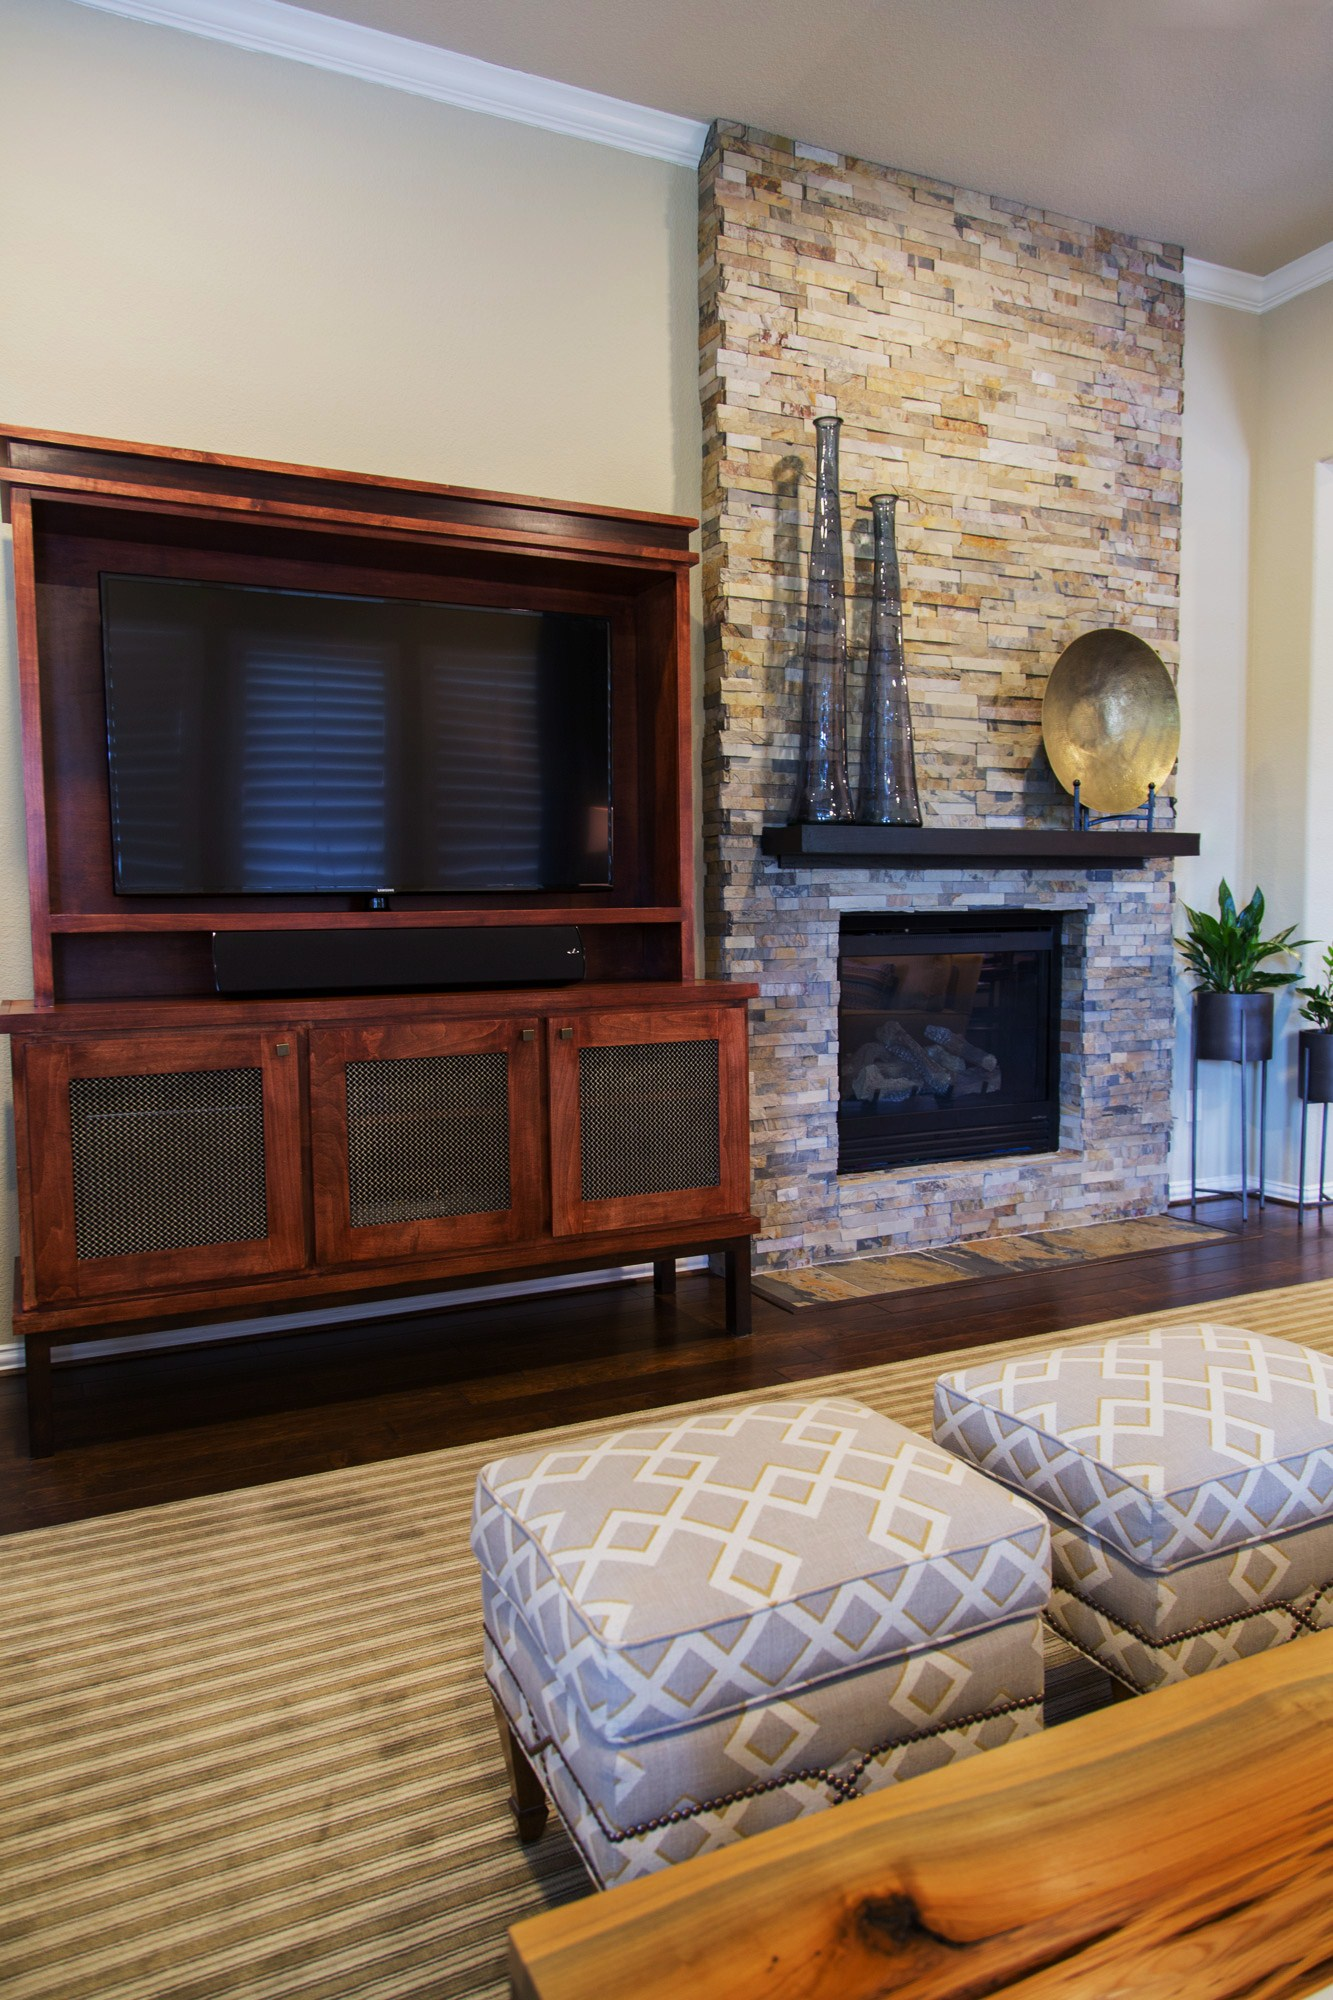 Your Fireplace Walls Finish Consider This Important Detail With Tile Or Stone Cladding  DESIGNED